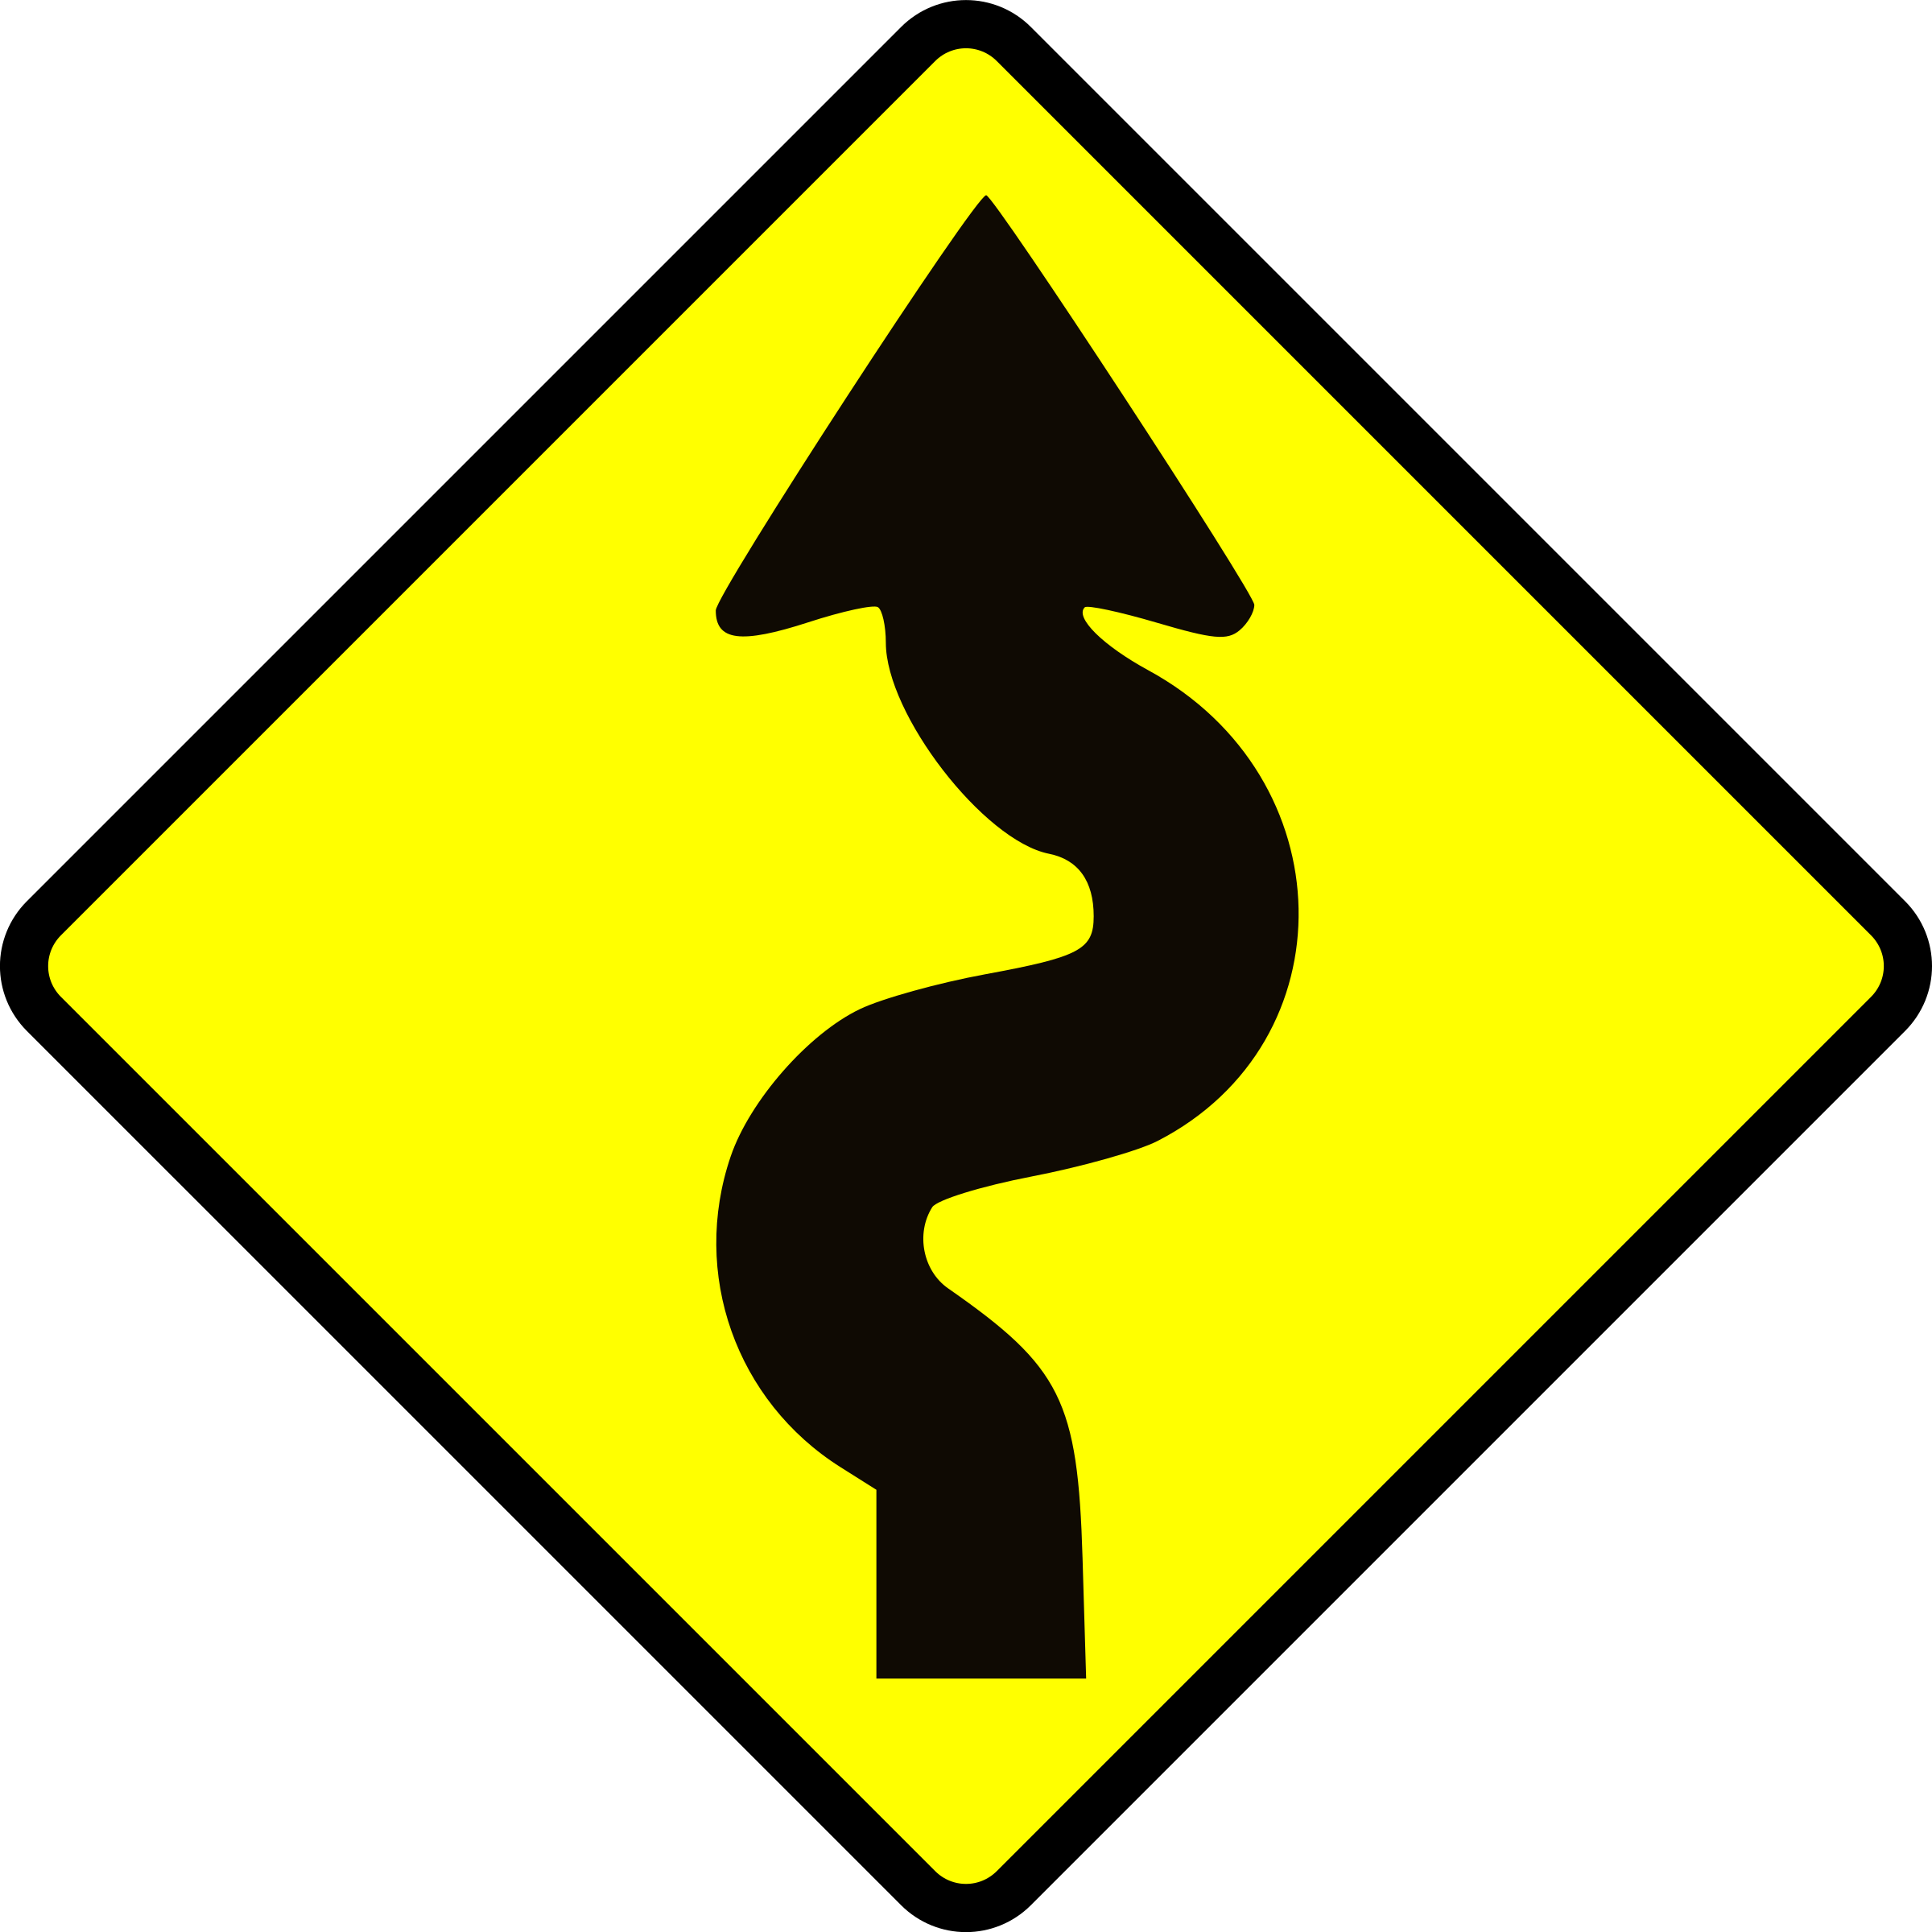 Caution winding icons png. Clipart road icon